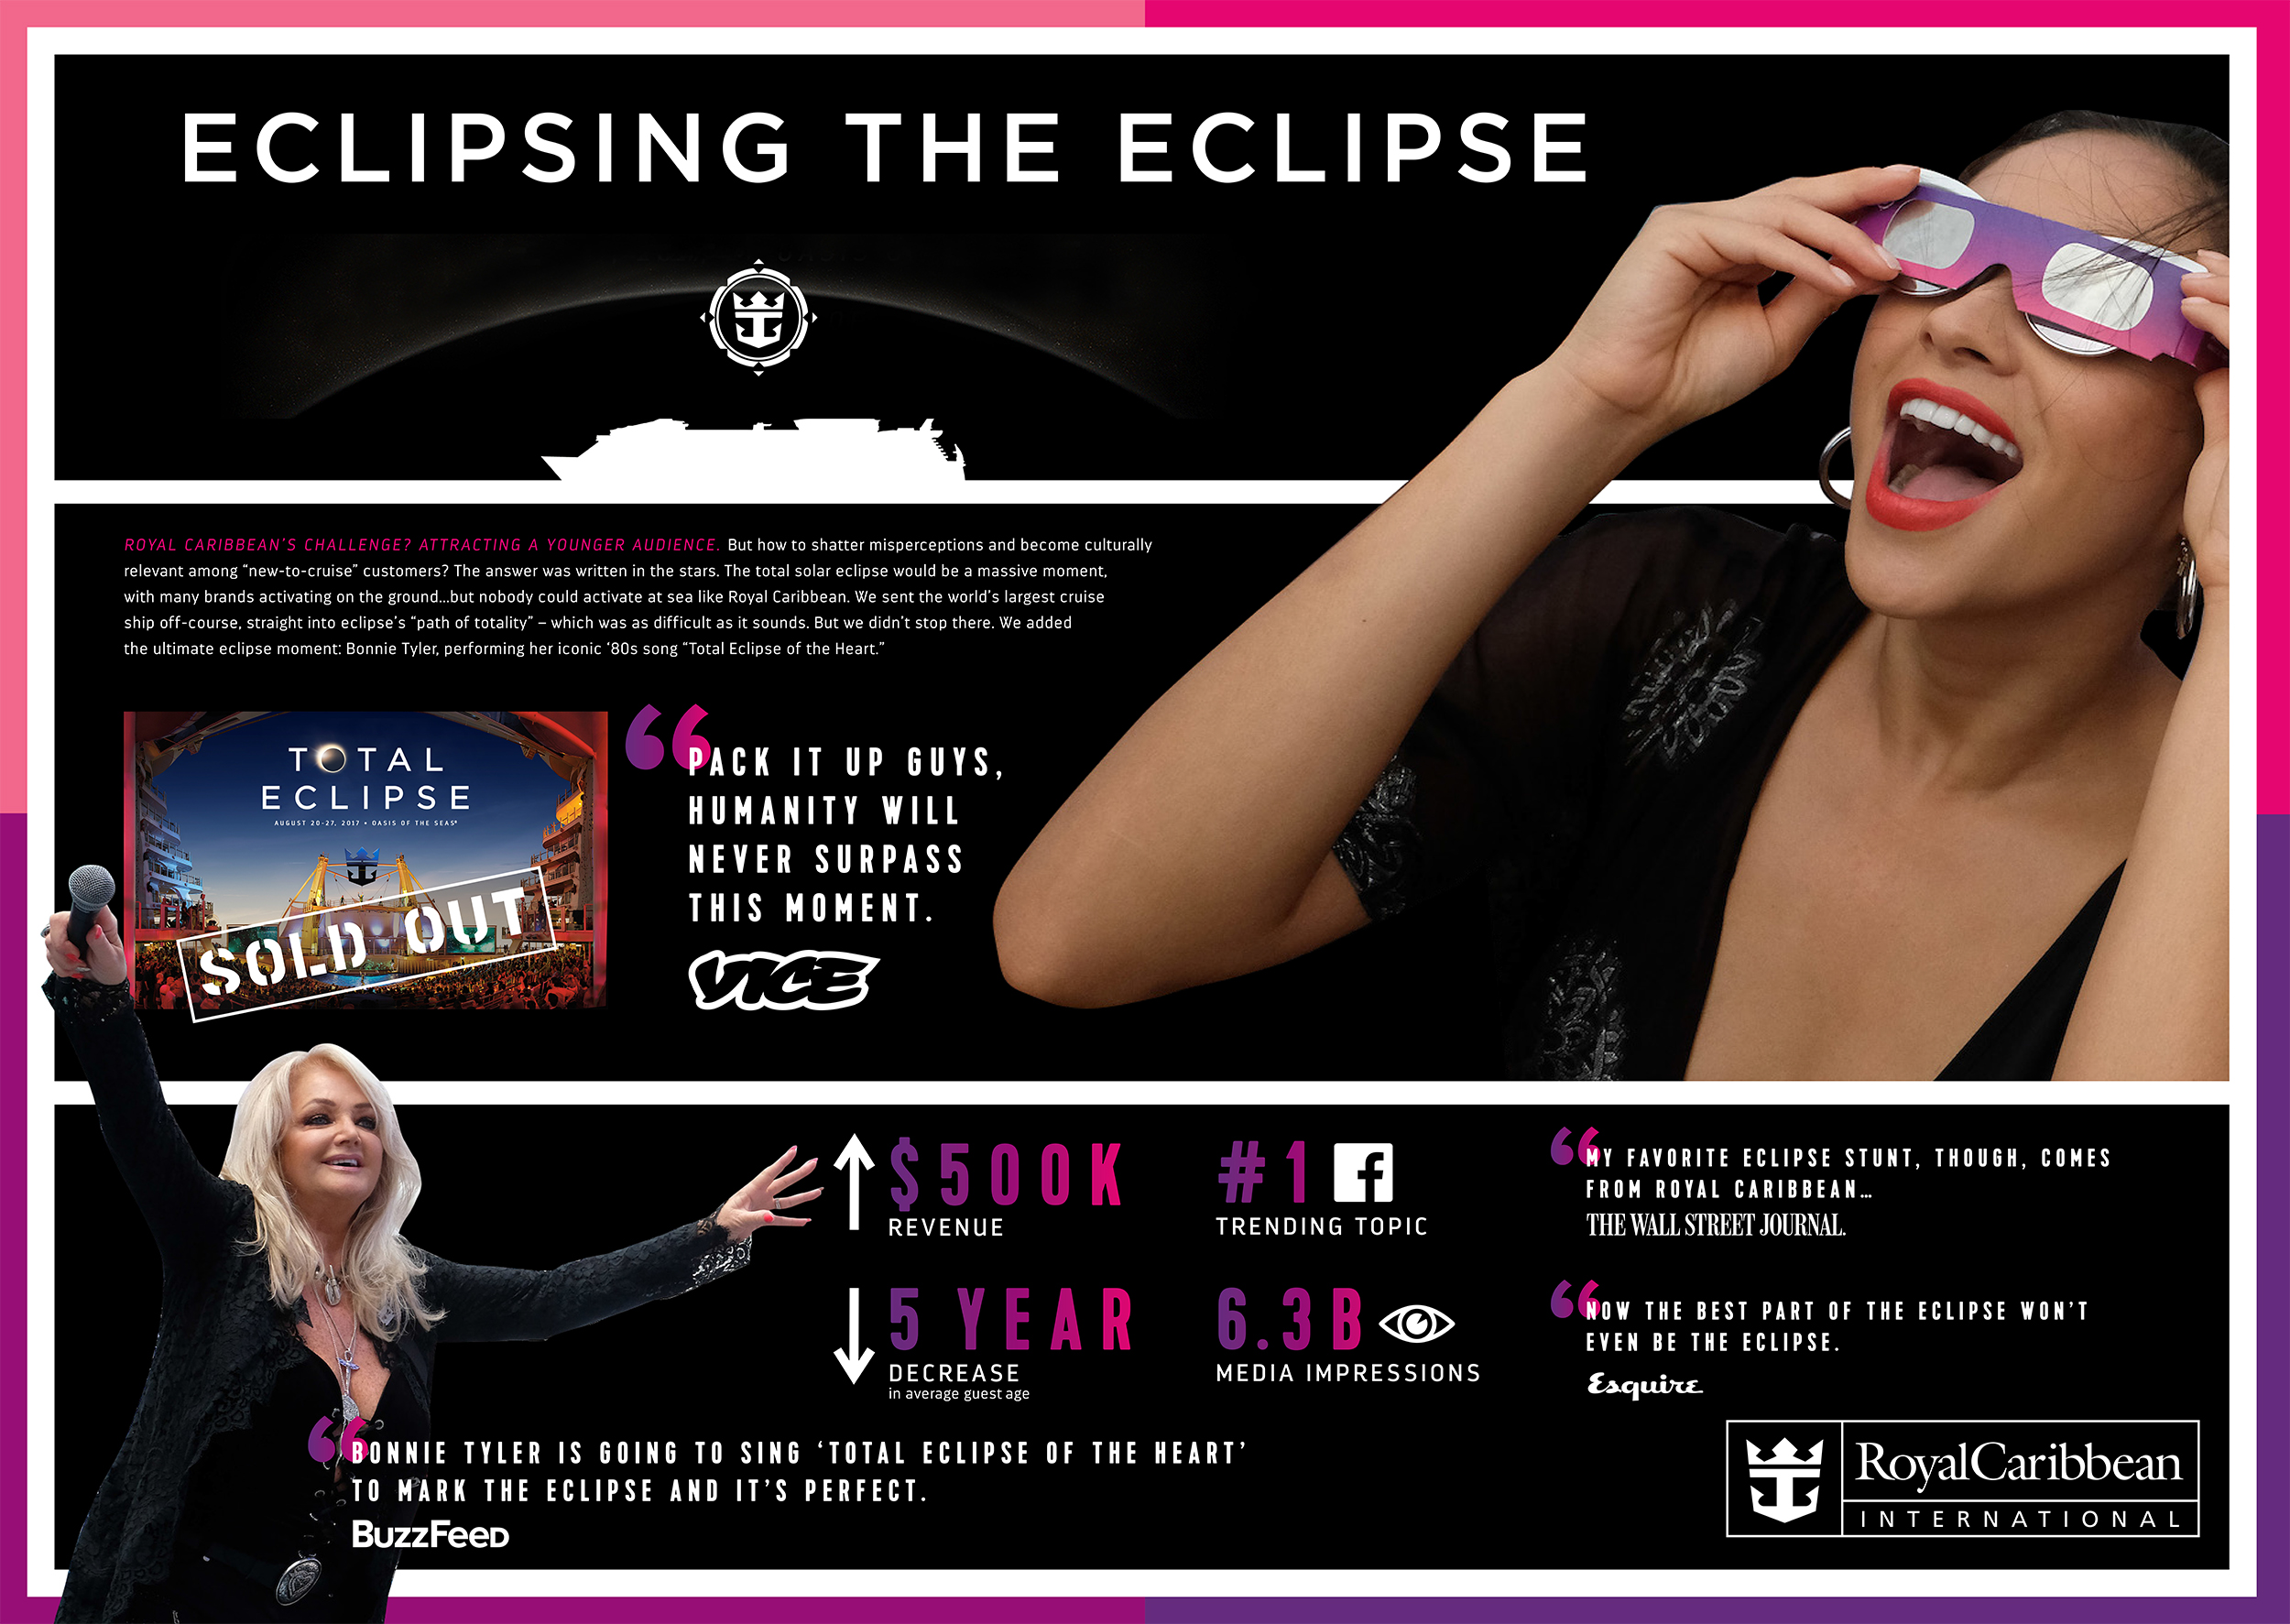 Thumbnail for Eclipsing the Eclipse